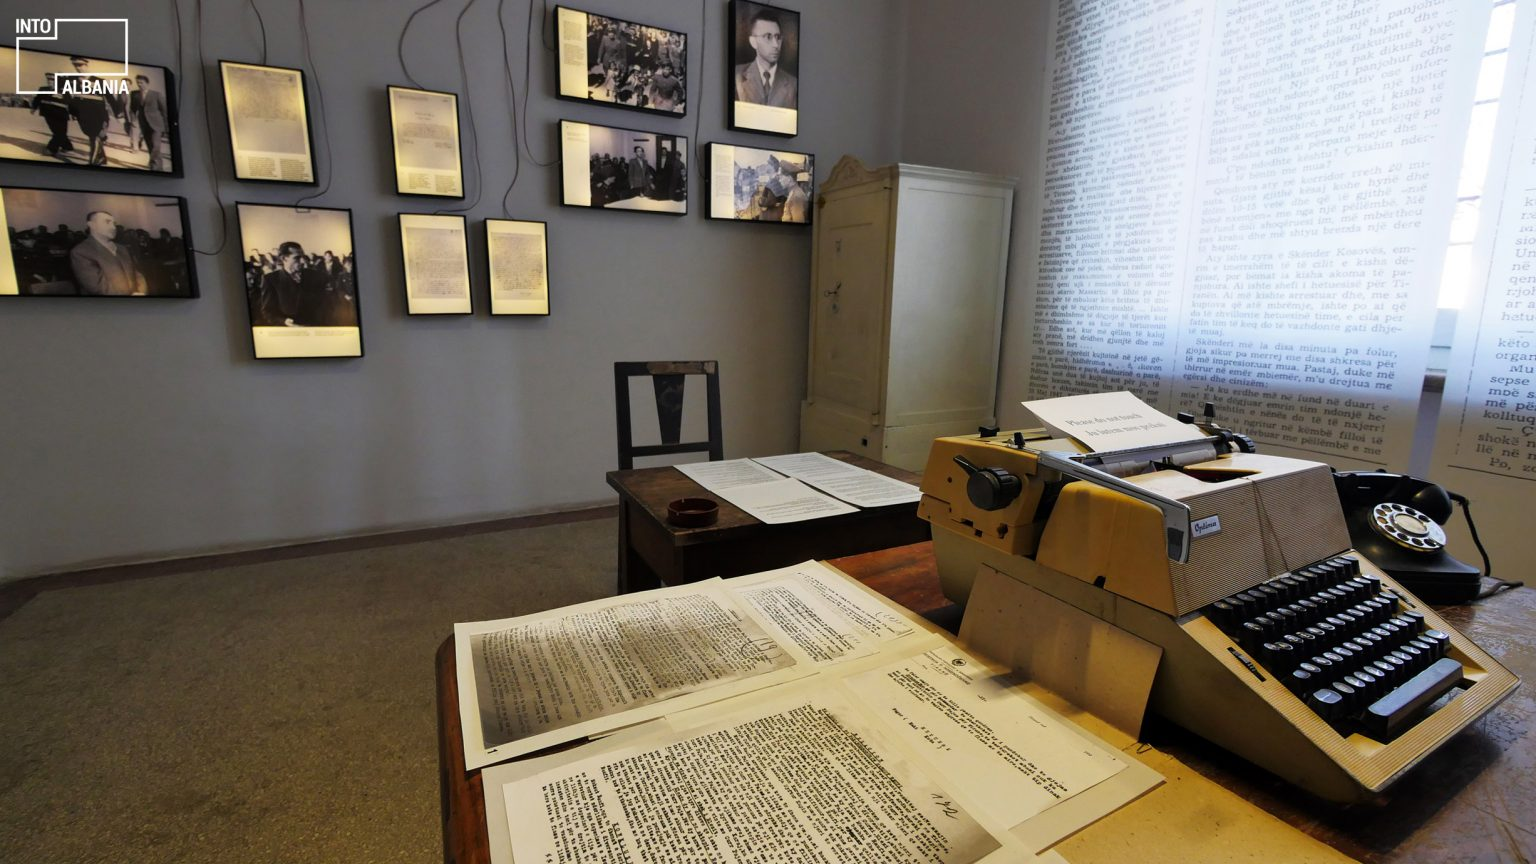 House of Leaves Museum, Tirana, photo by IntoAlbania